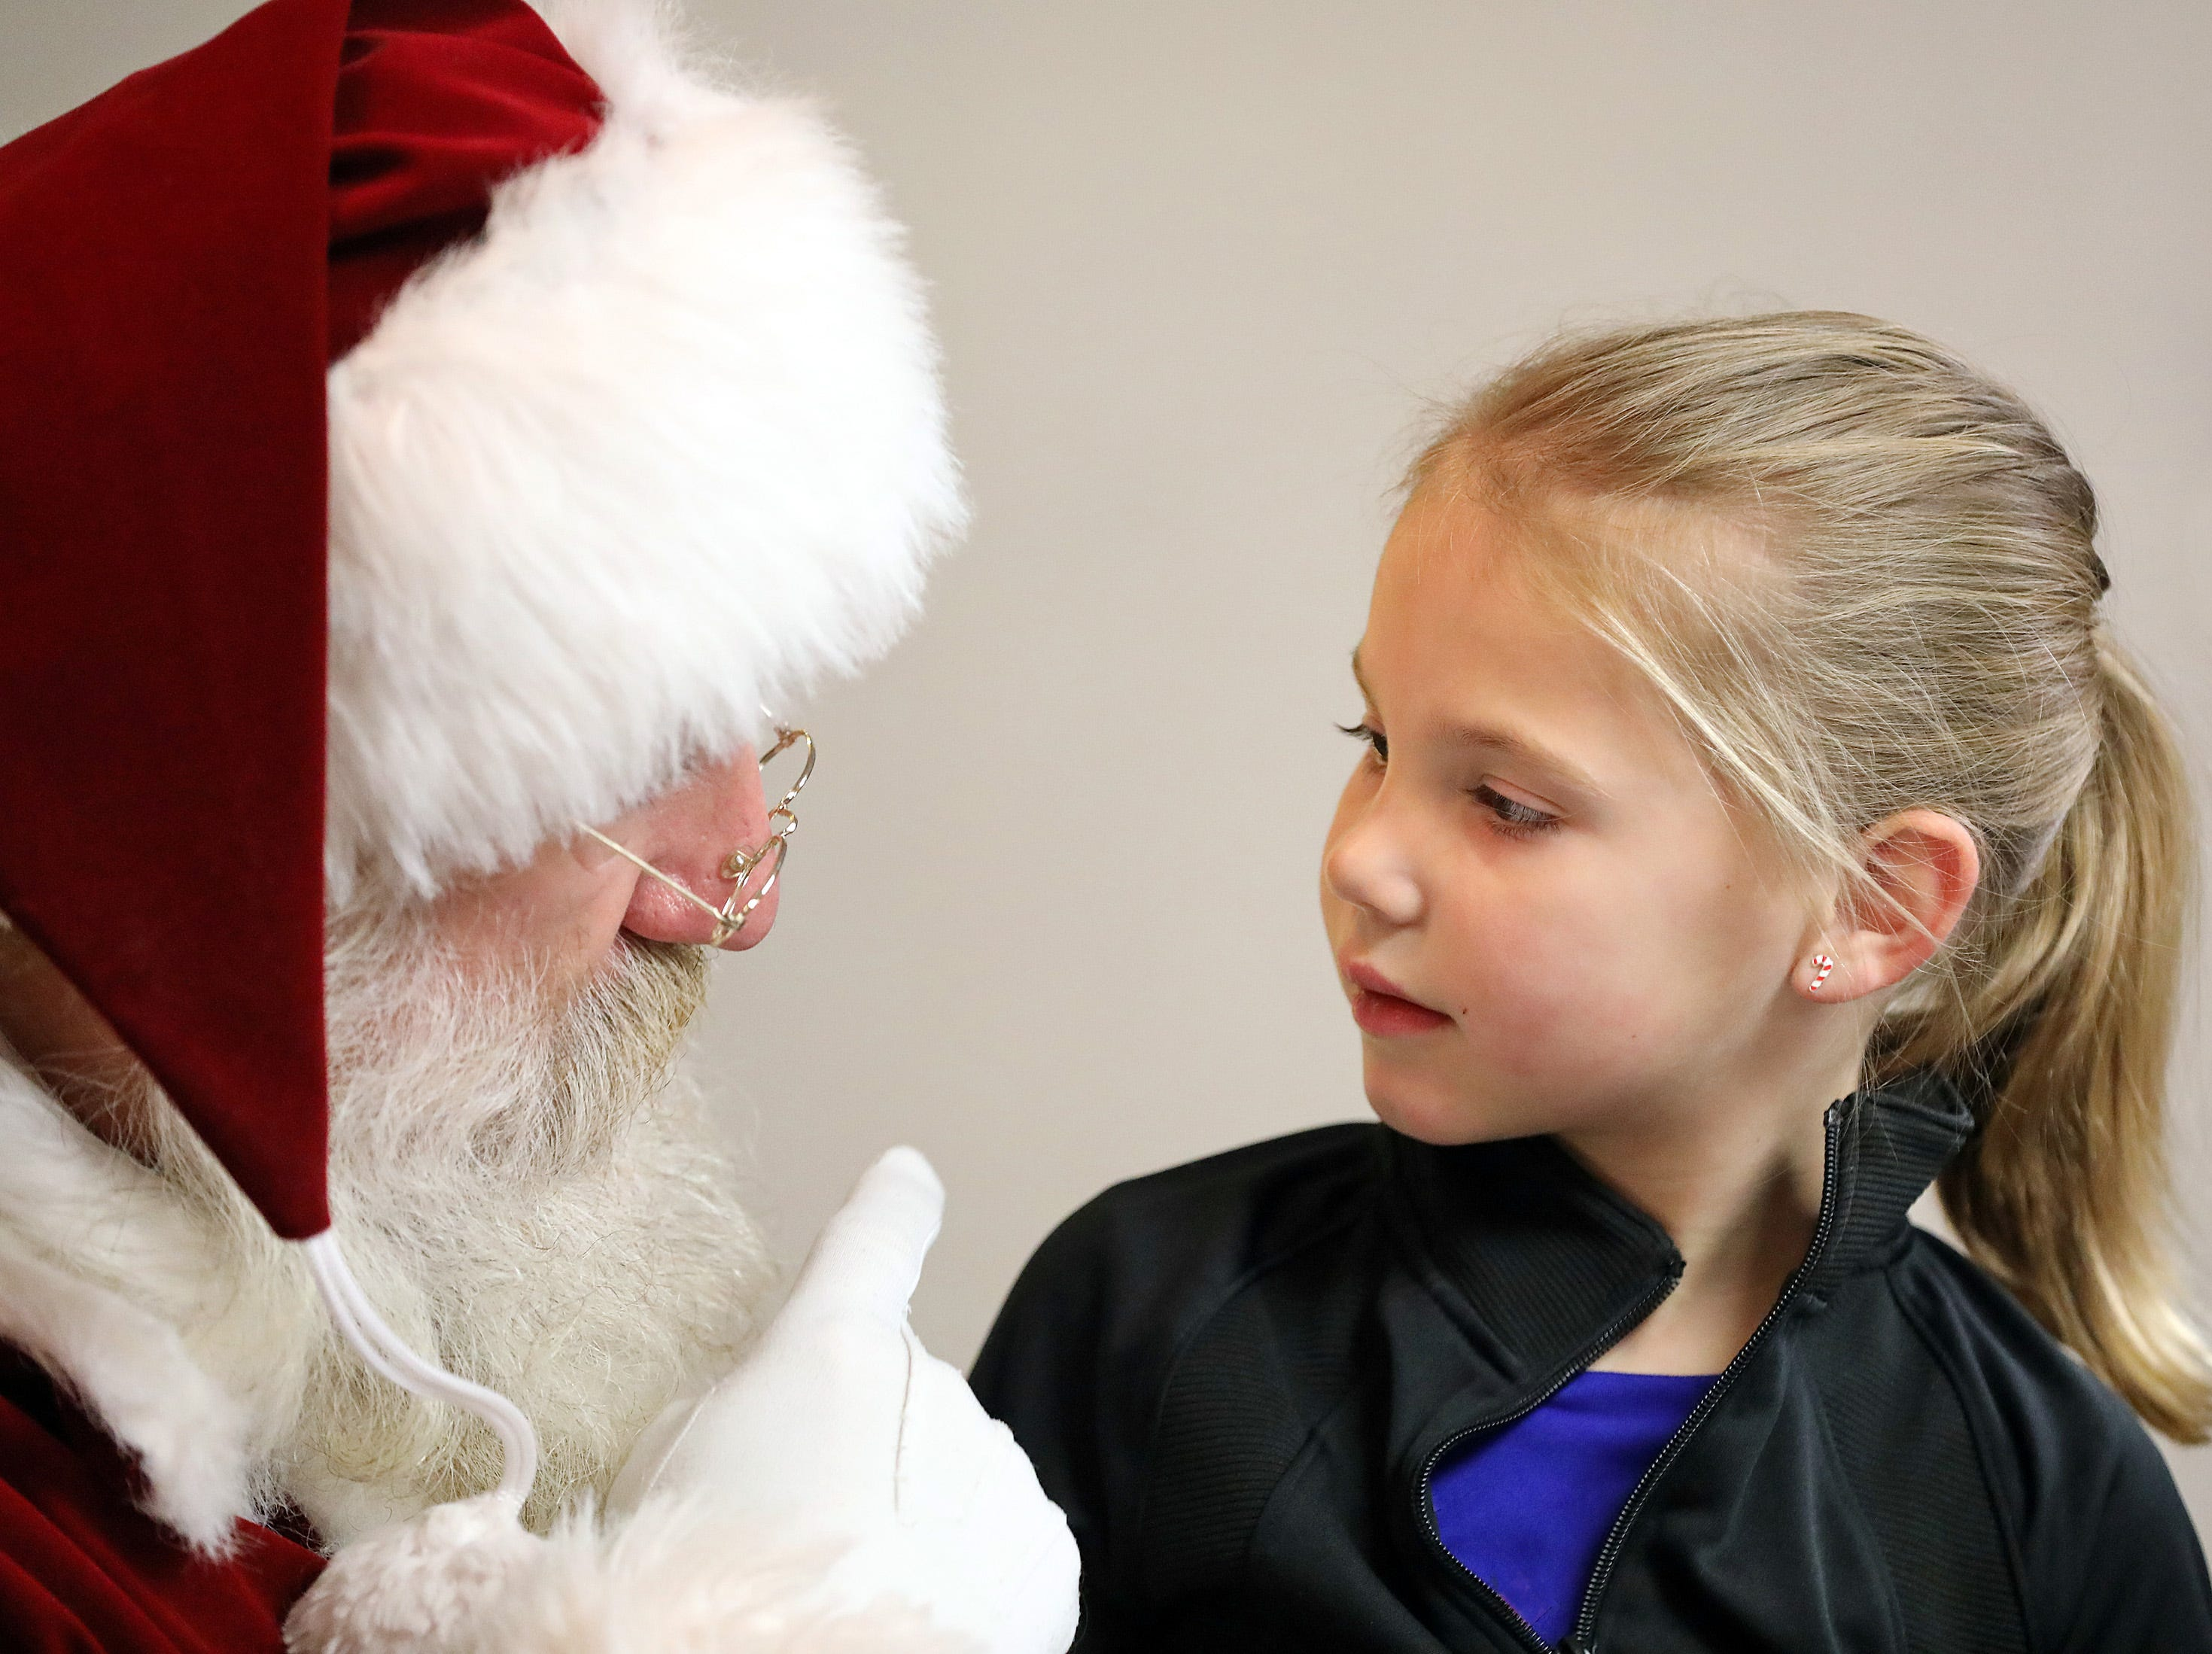 Mollie Darling, 5, of Urbandale visits with Santa during UCAN's  third annual Light Up Urbandale on Sunday, Dec. 2, 2018 at Lions Park in Urbandale. Holiday festivities included a visit from Santa, crafts, goodies, official tree lighting ceremony, live reindeer and entertainment.